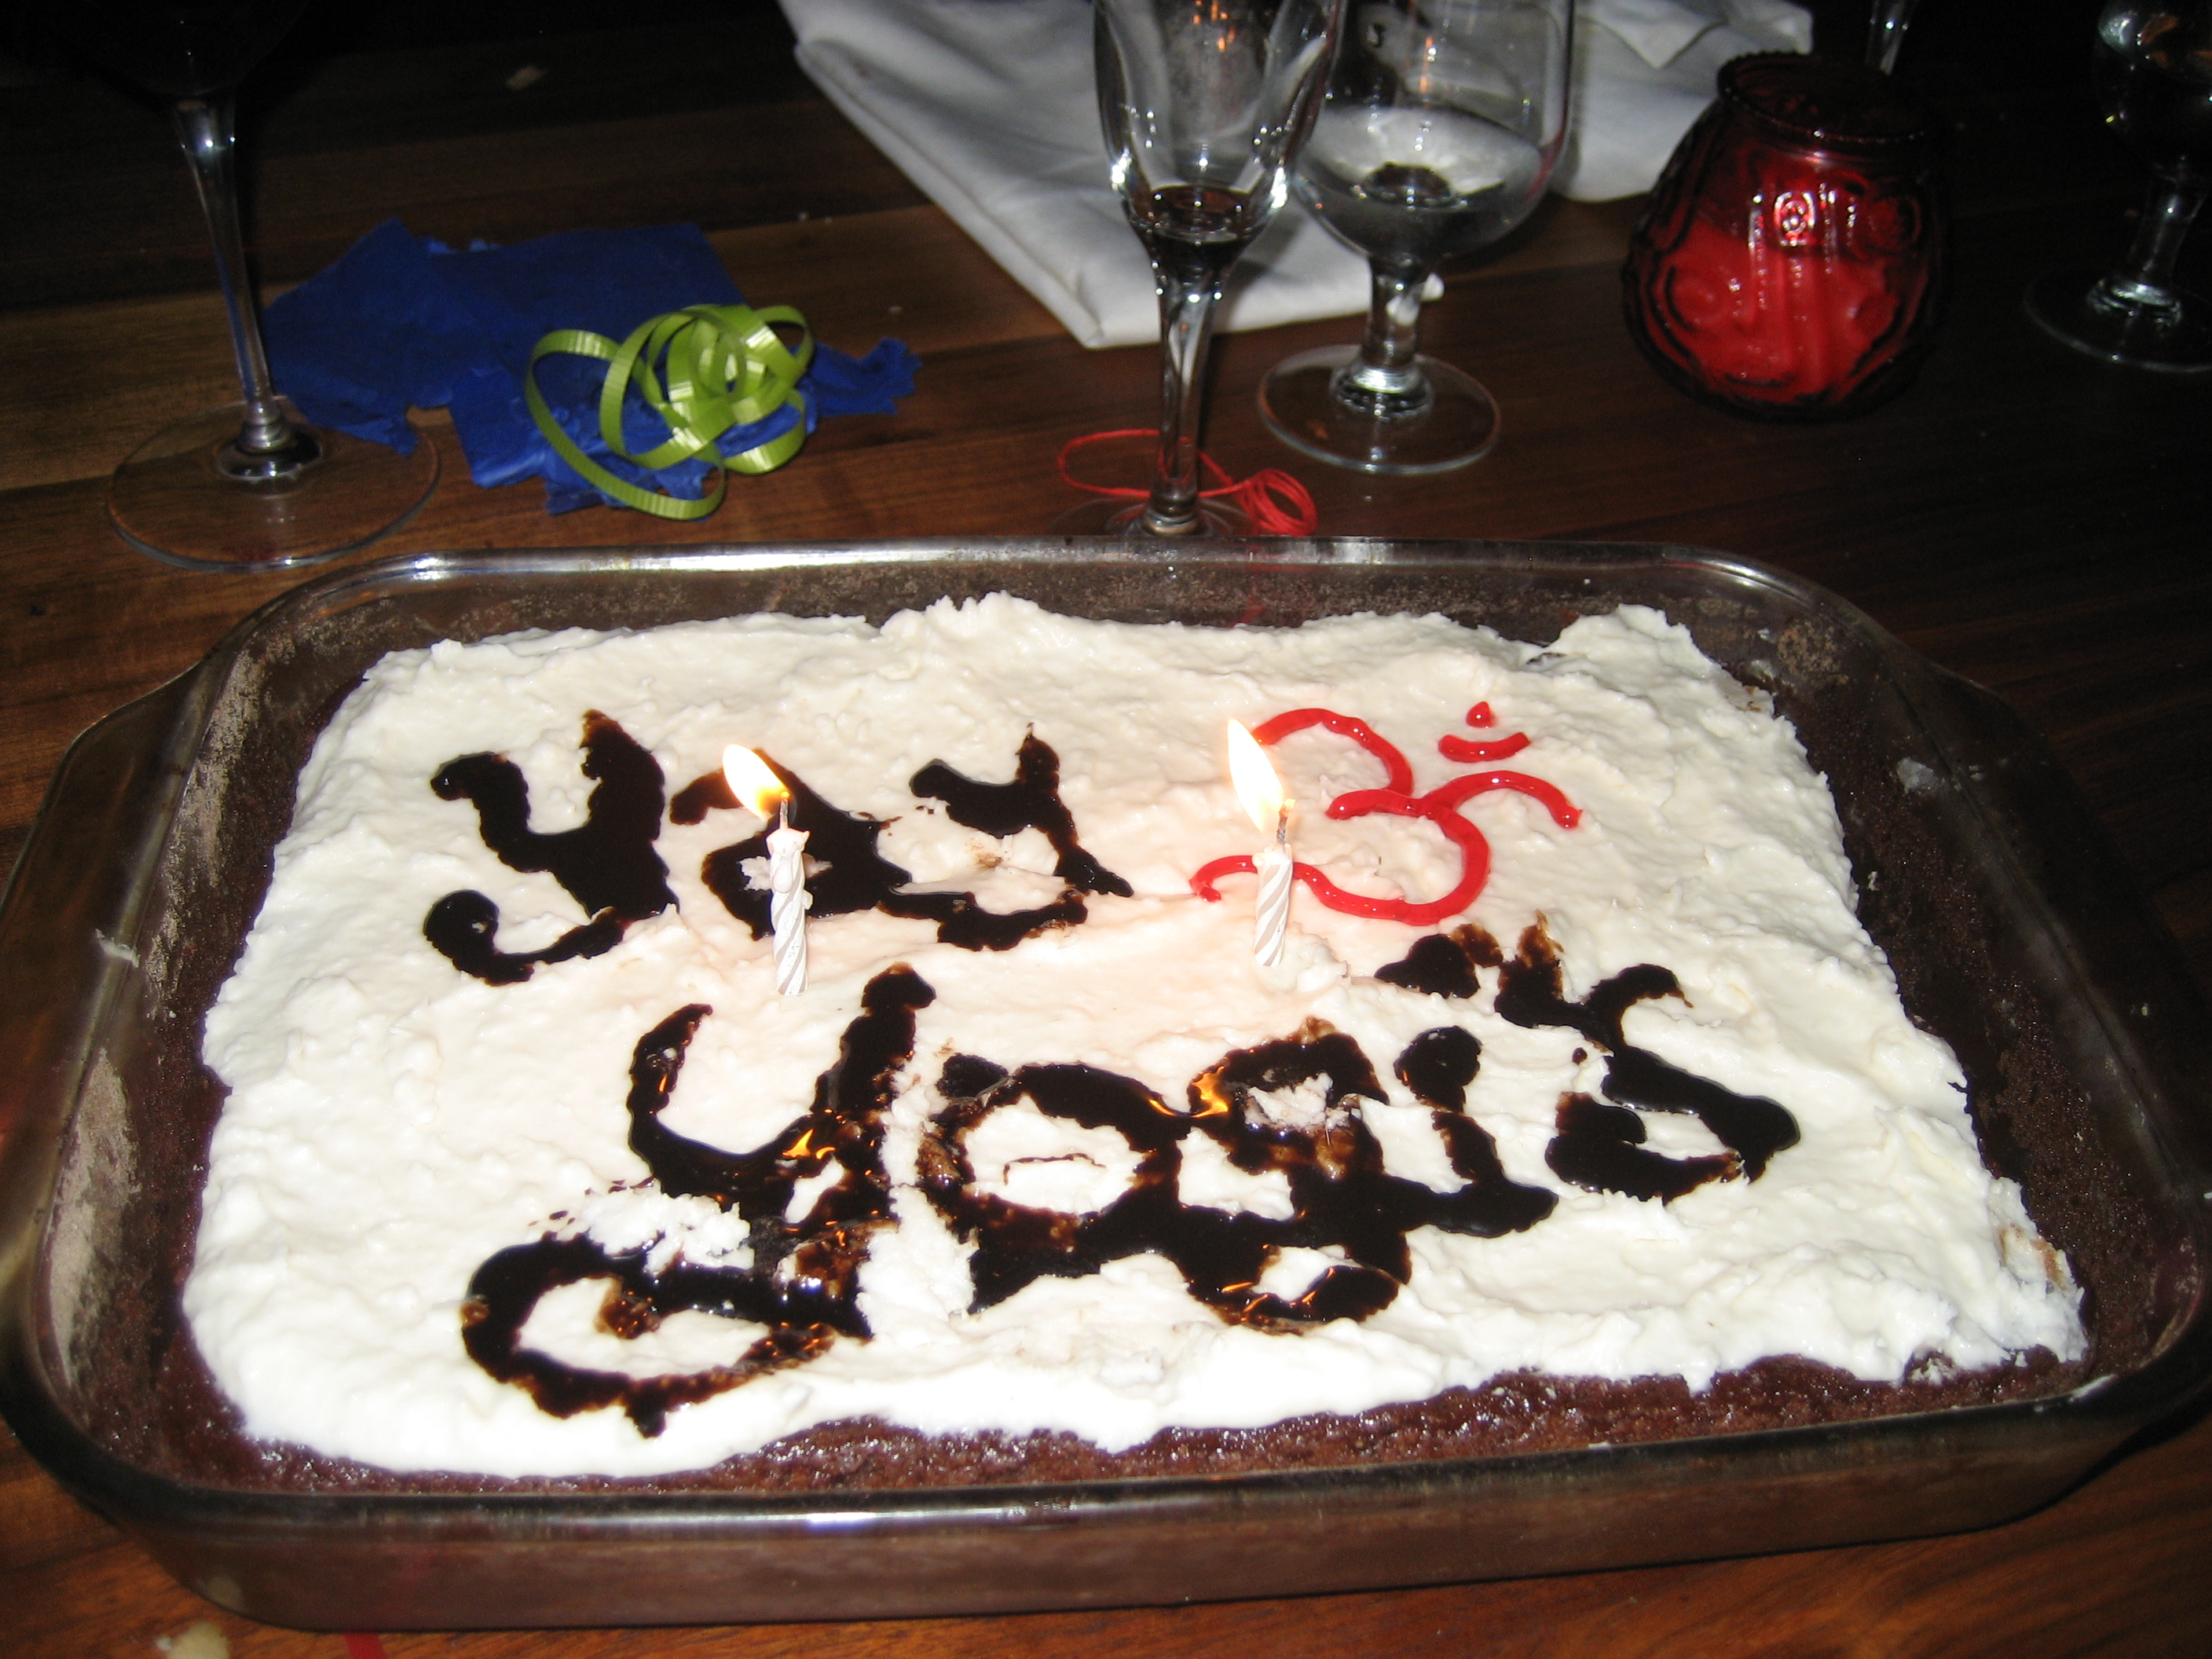 Yoga is good for you. See? It's on a cake!